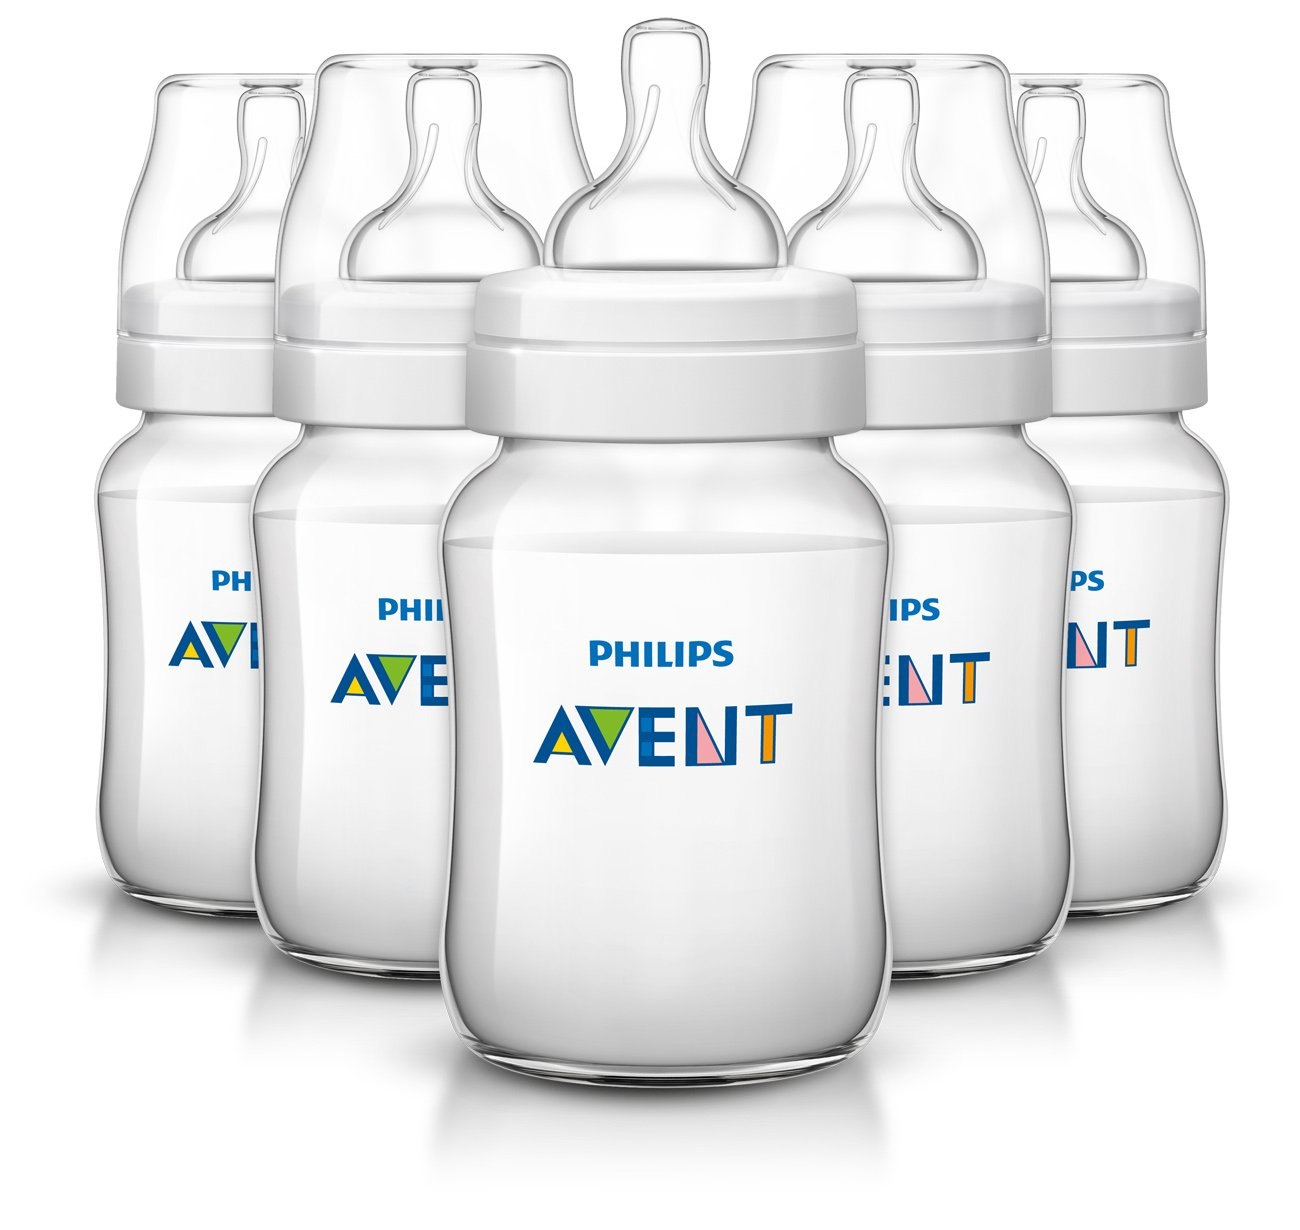 Philips Avent Classic Plus Baby Bottles, 9 Ounce (5 Pack)